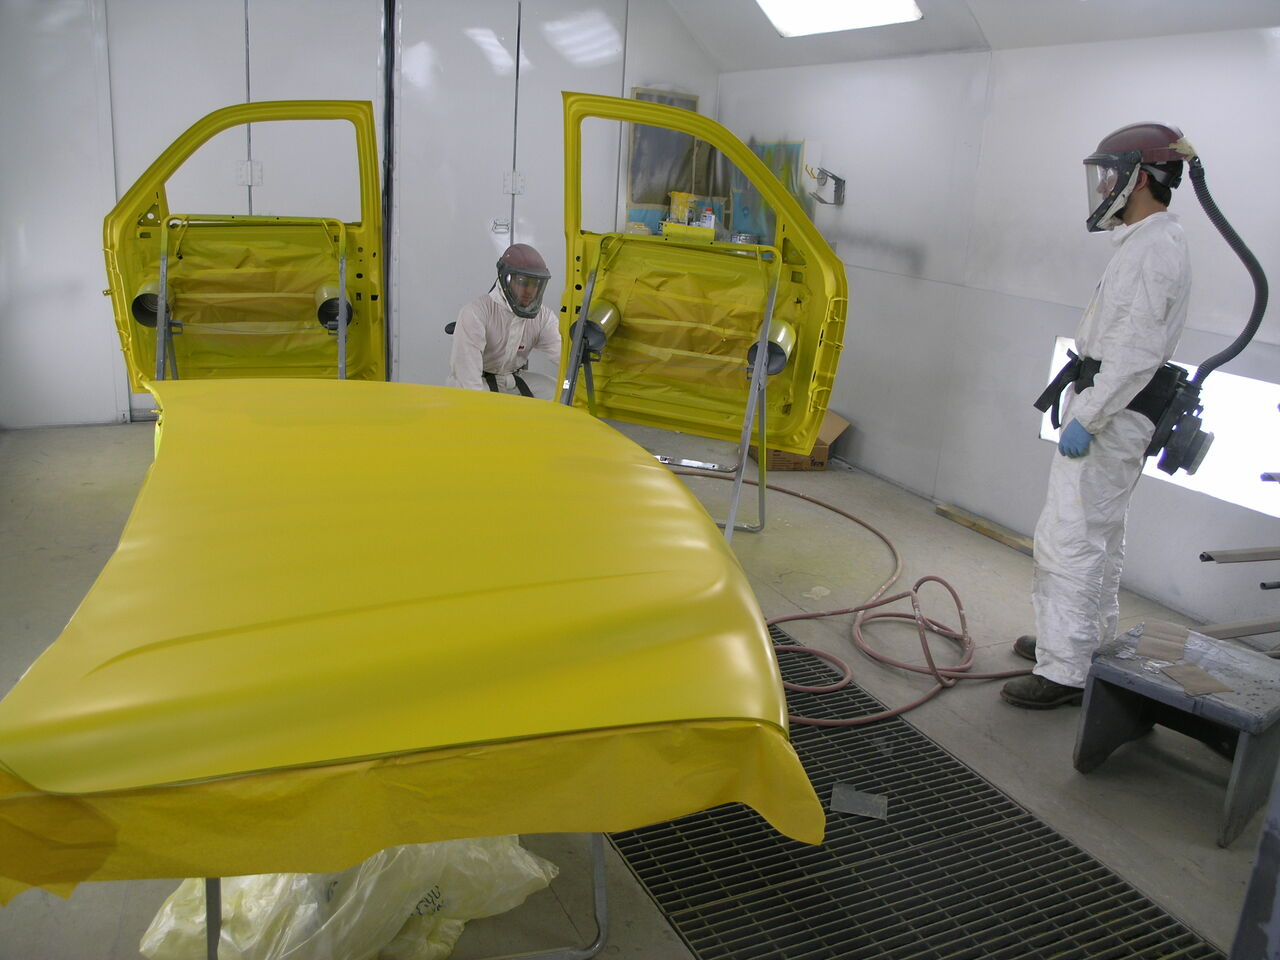 Tyler Spear and Steve Rank painting the doors for a truck being refinished for the City of Sunbury.